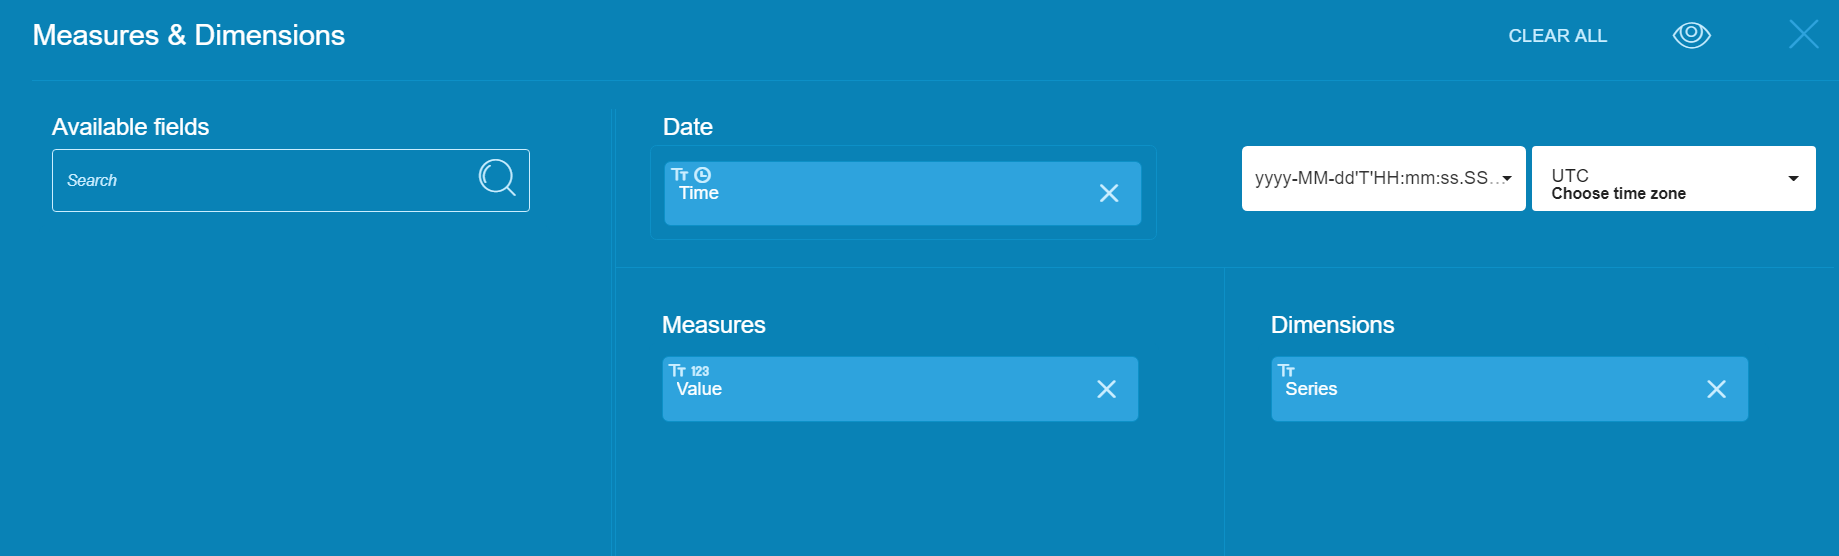 CSV_measures_and_dimensions_panel.png